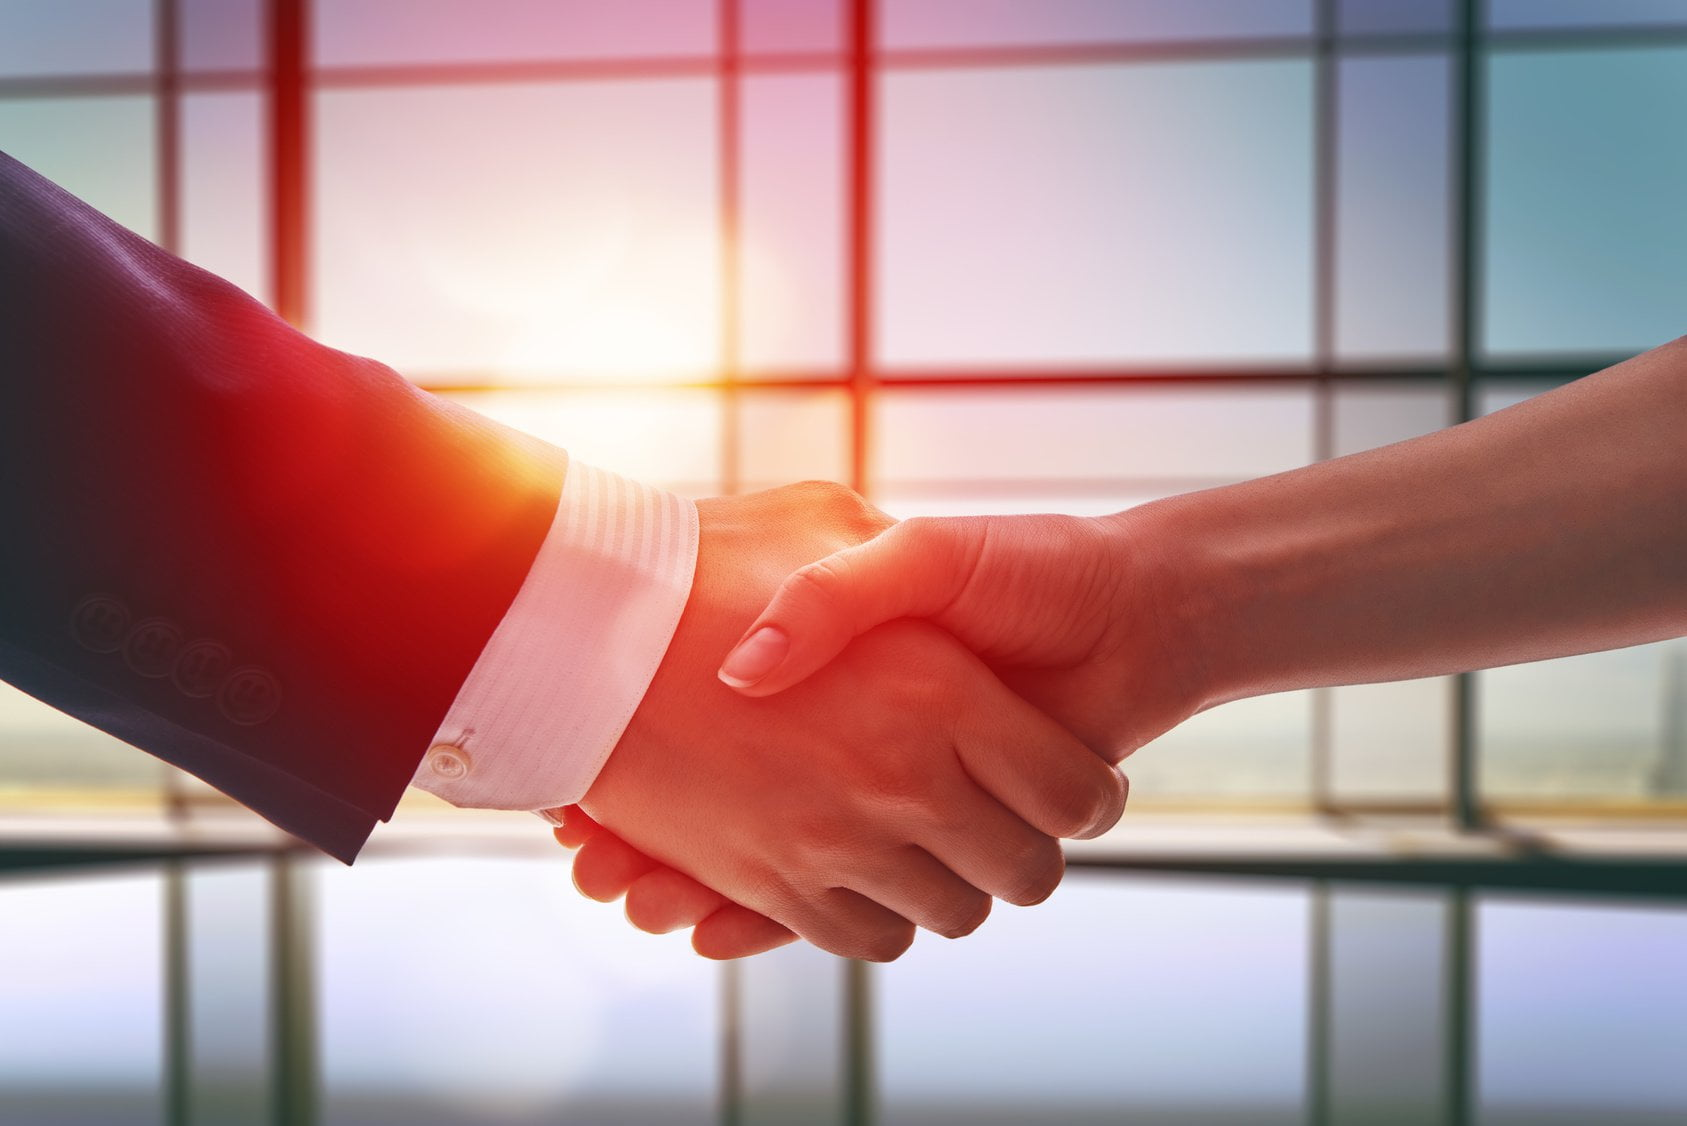 3 Questions to Ask Before Entering Into a Business Partnership